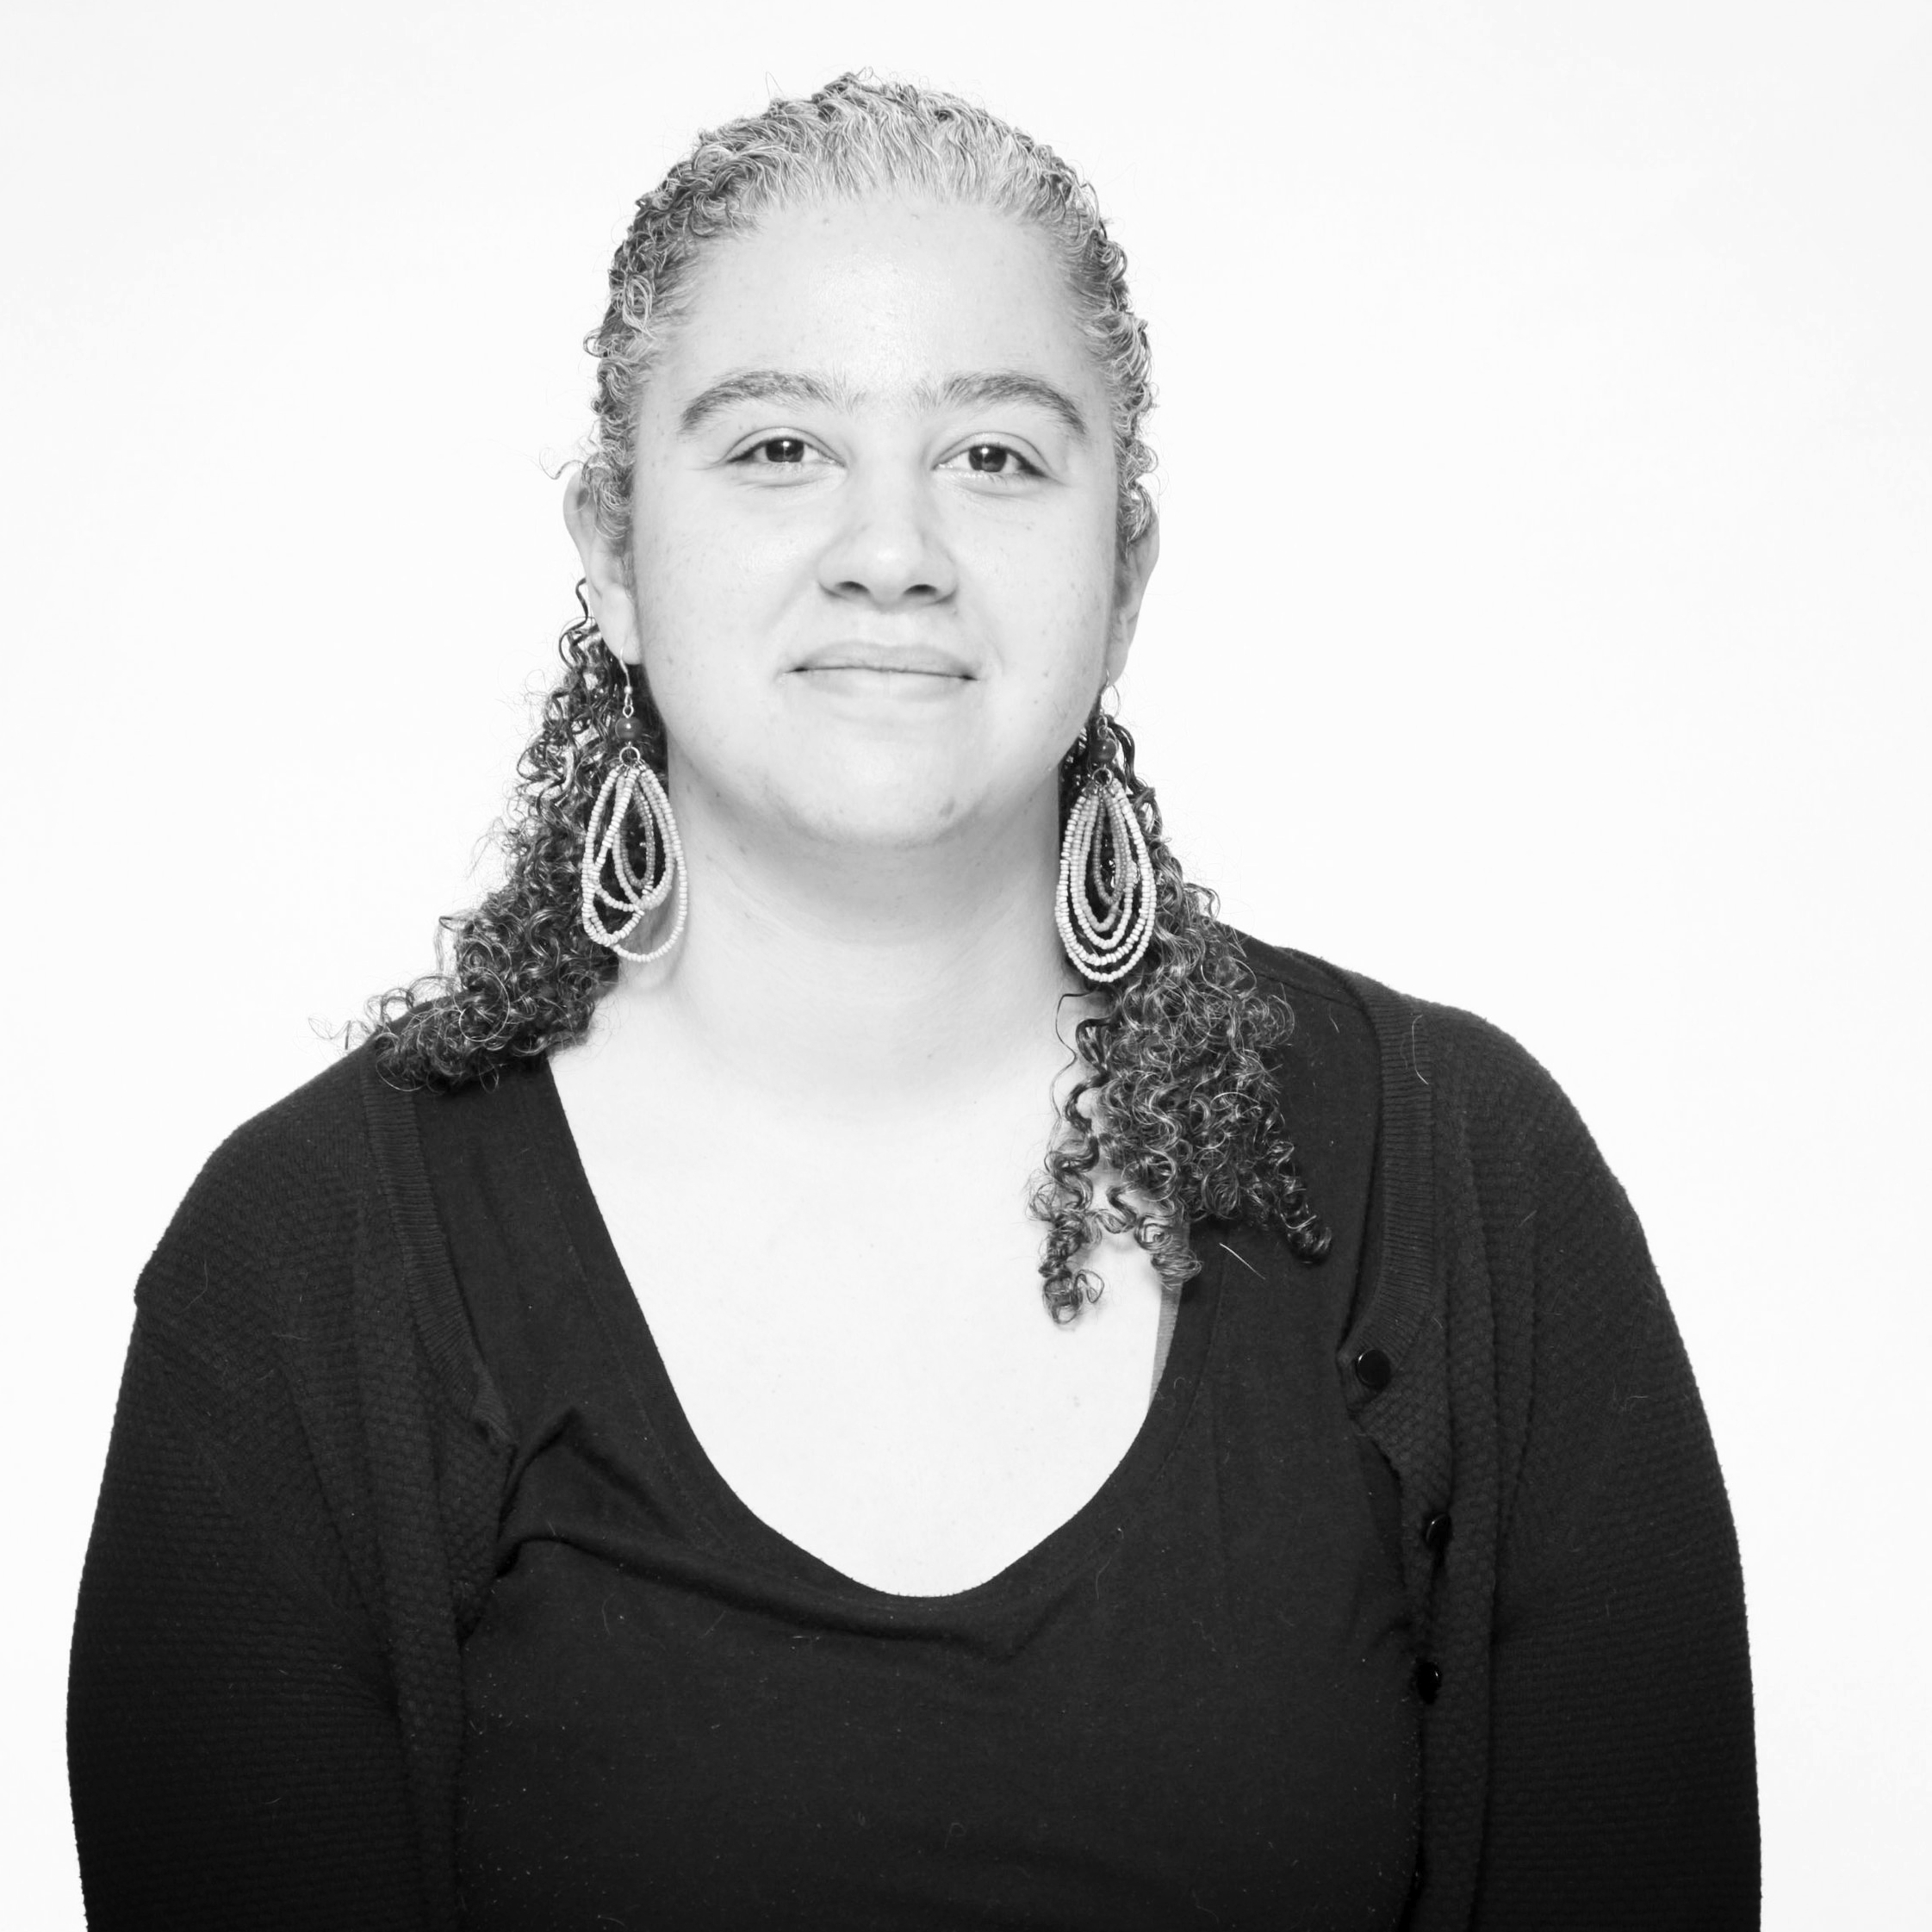 JESSKAH McCARTNEY | Music Director - Jesskah has been the Music Director at Crestwicke since 2010, and has been a member since 2006. She desires to facilitate sincere worship through music, prayer, and Scripture reading for both the congregation and the Music Ministry leaders.